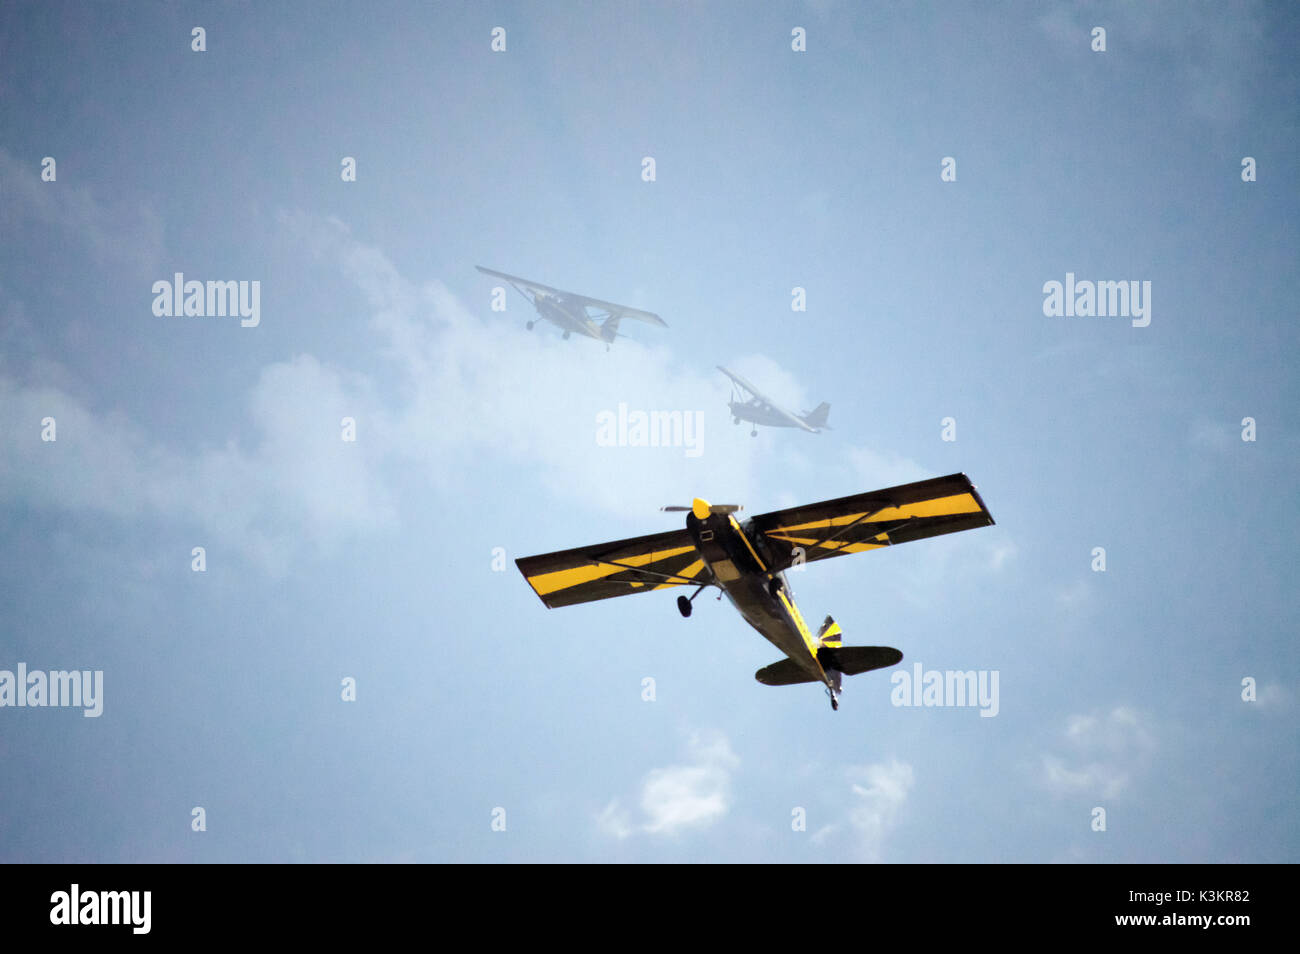 A blue and yellow propeller bi-plane special effects photo showing how it turned in the sky. Stock Photo